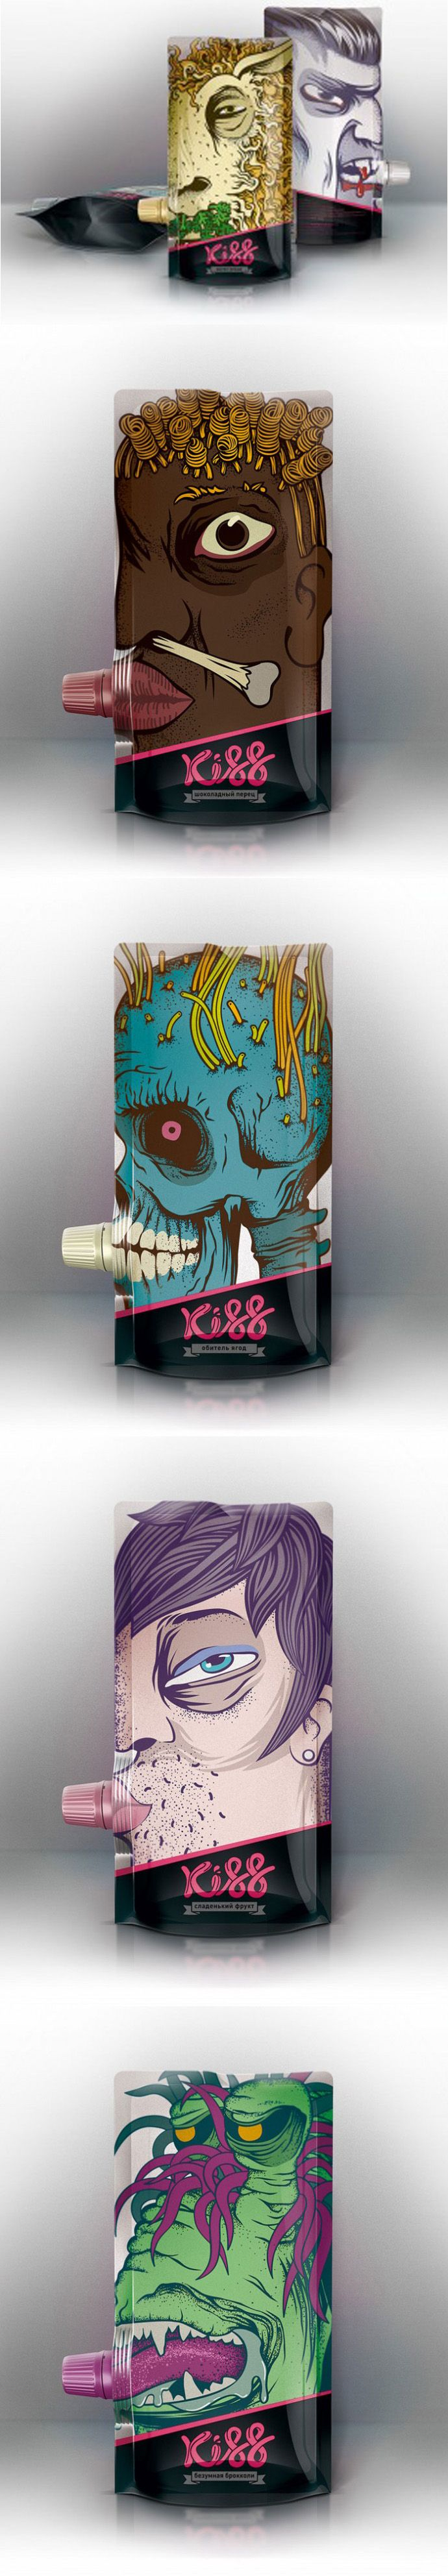 Weird but cool Kiss #illustrated #packaging PD